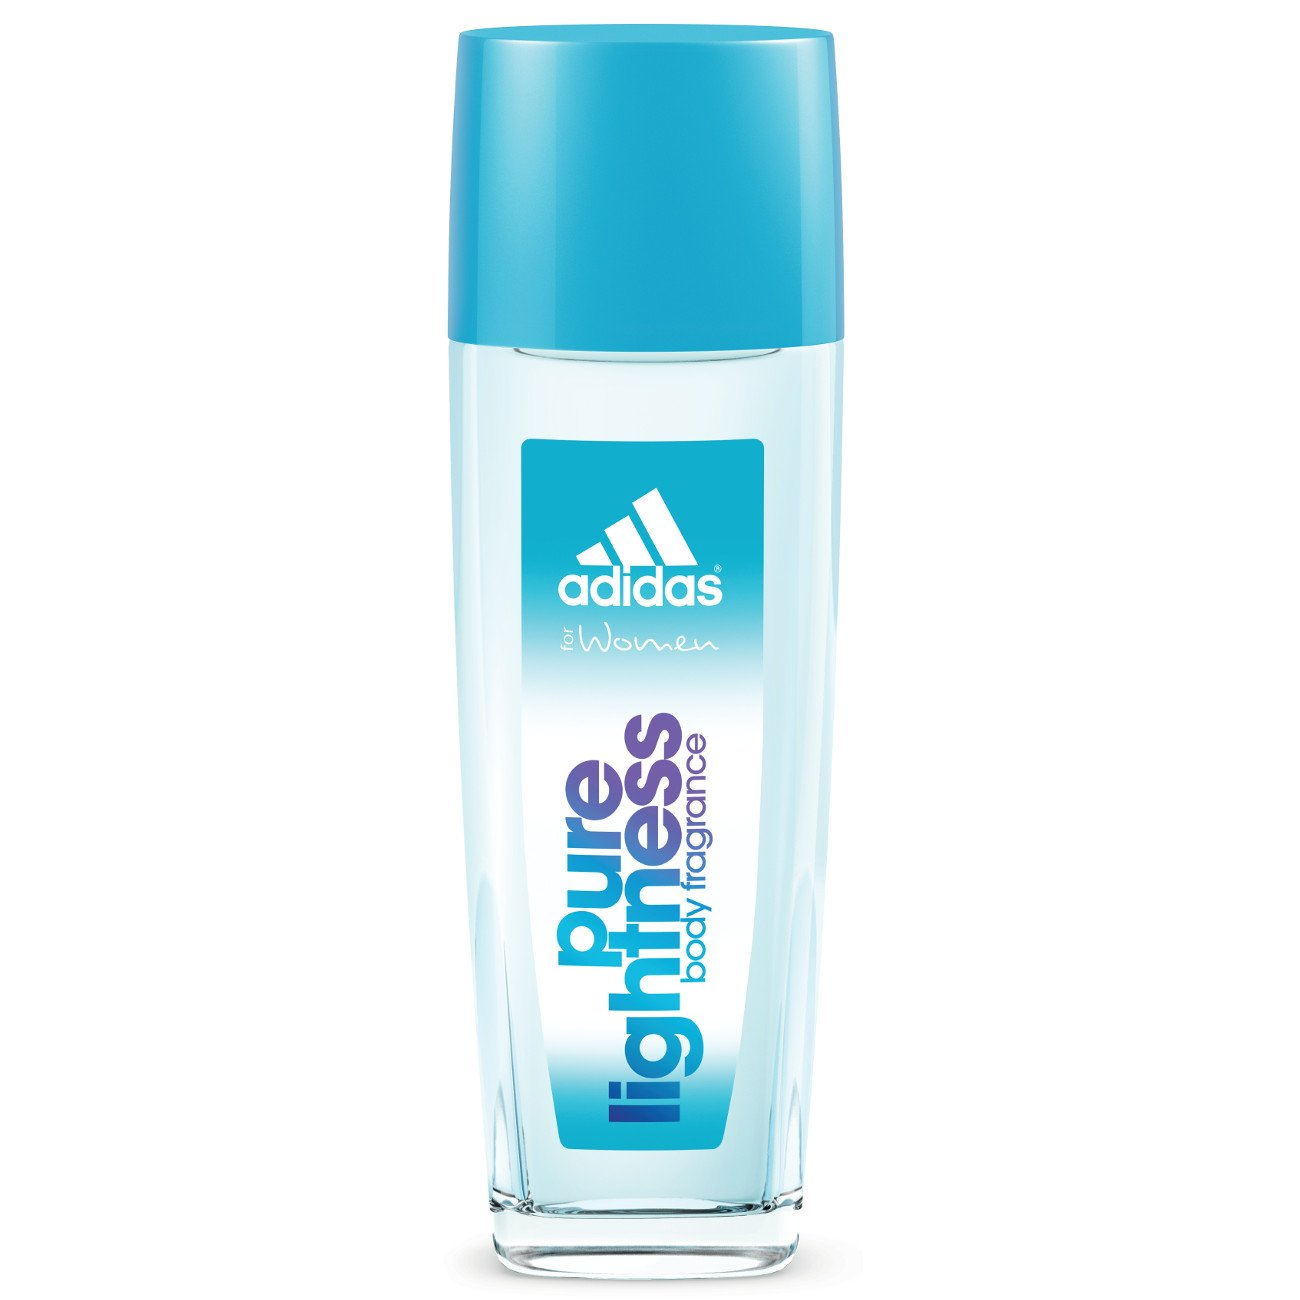 Adidas Fragrance Body Fragrance, Pure Lightness, 2.5 Fluid Ounce